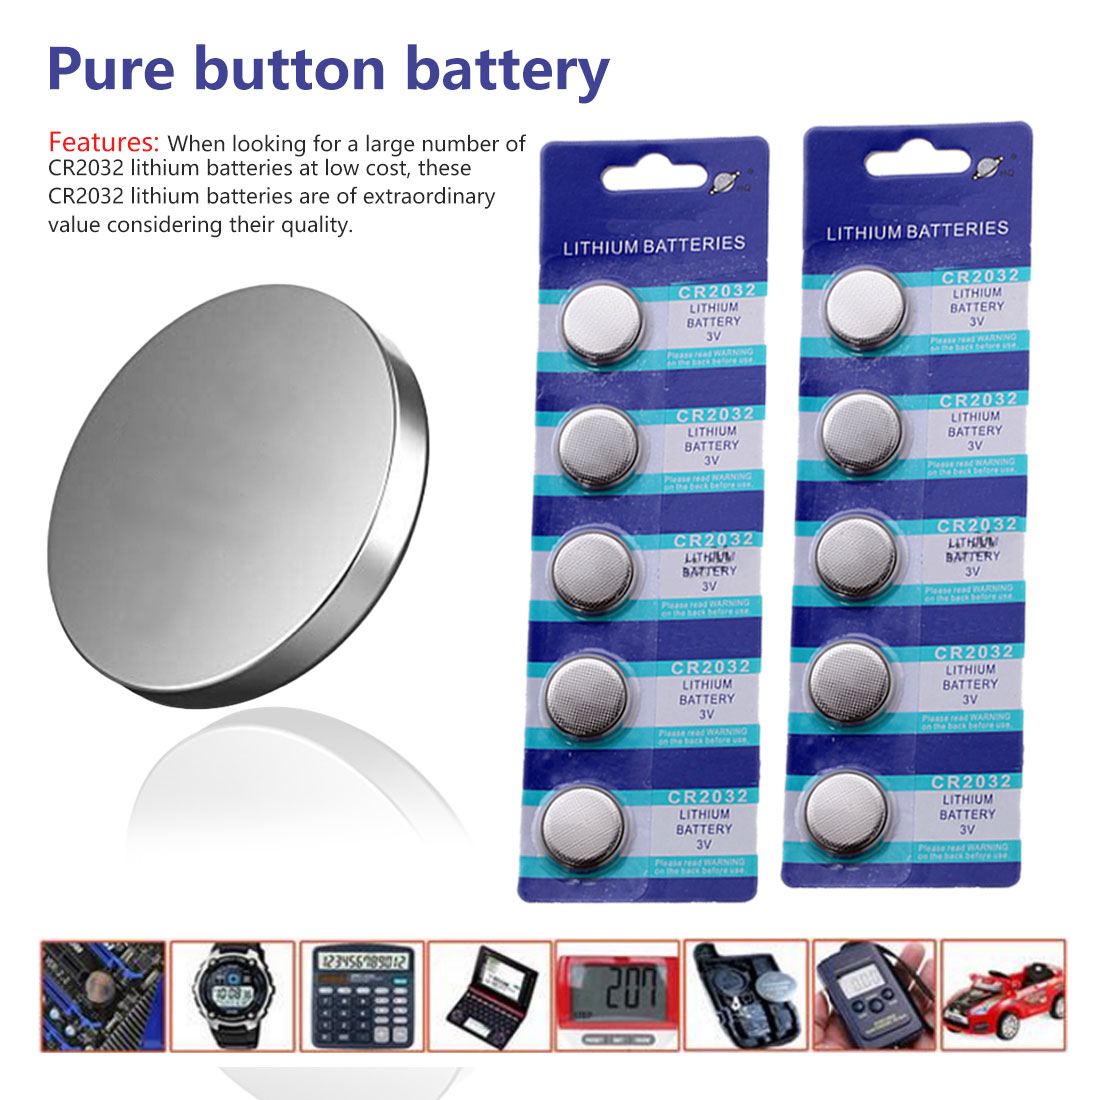 10pcs CR2032 battery 3V Lithium Button Cell Coin Batteries for Watch Computer Toy Scale Thermometer LED Night light in Button Cell Batteries from Consumer Electronics